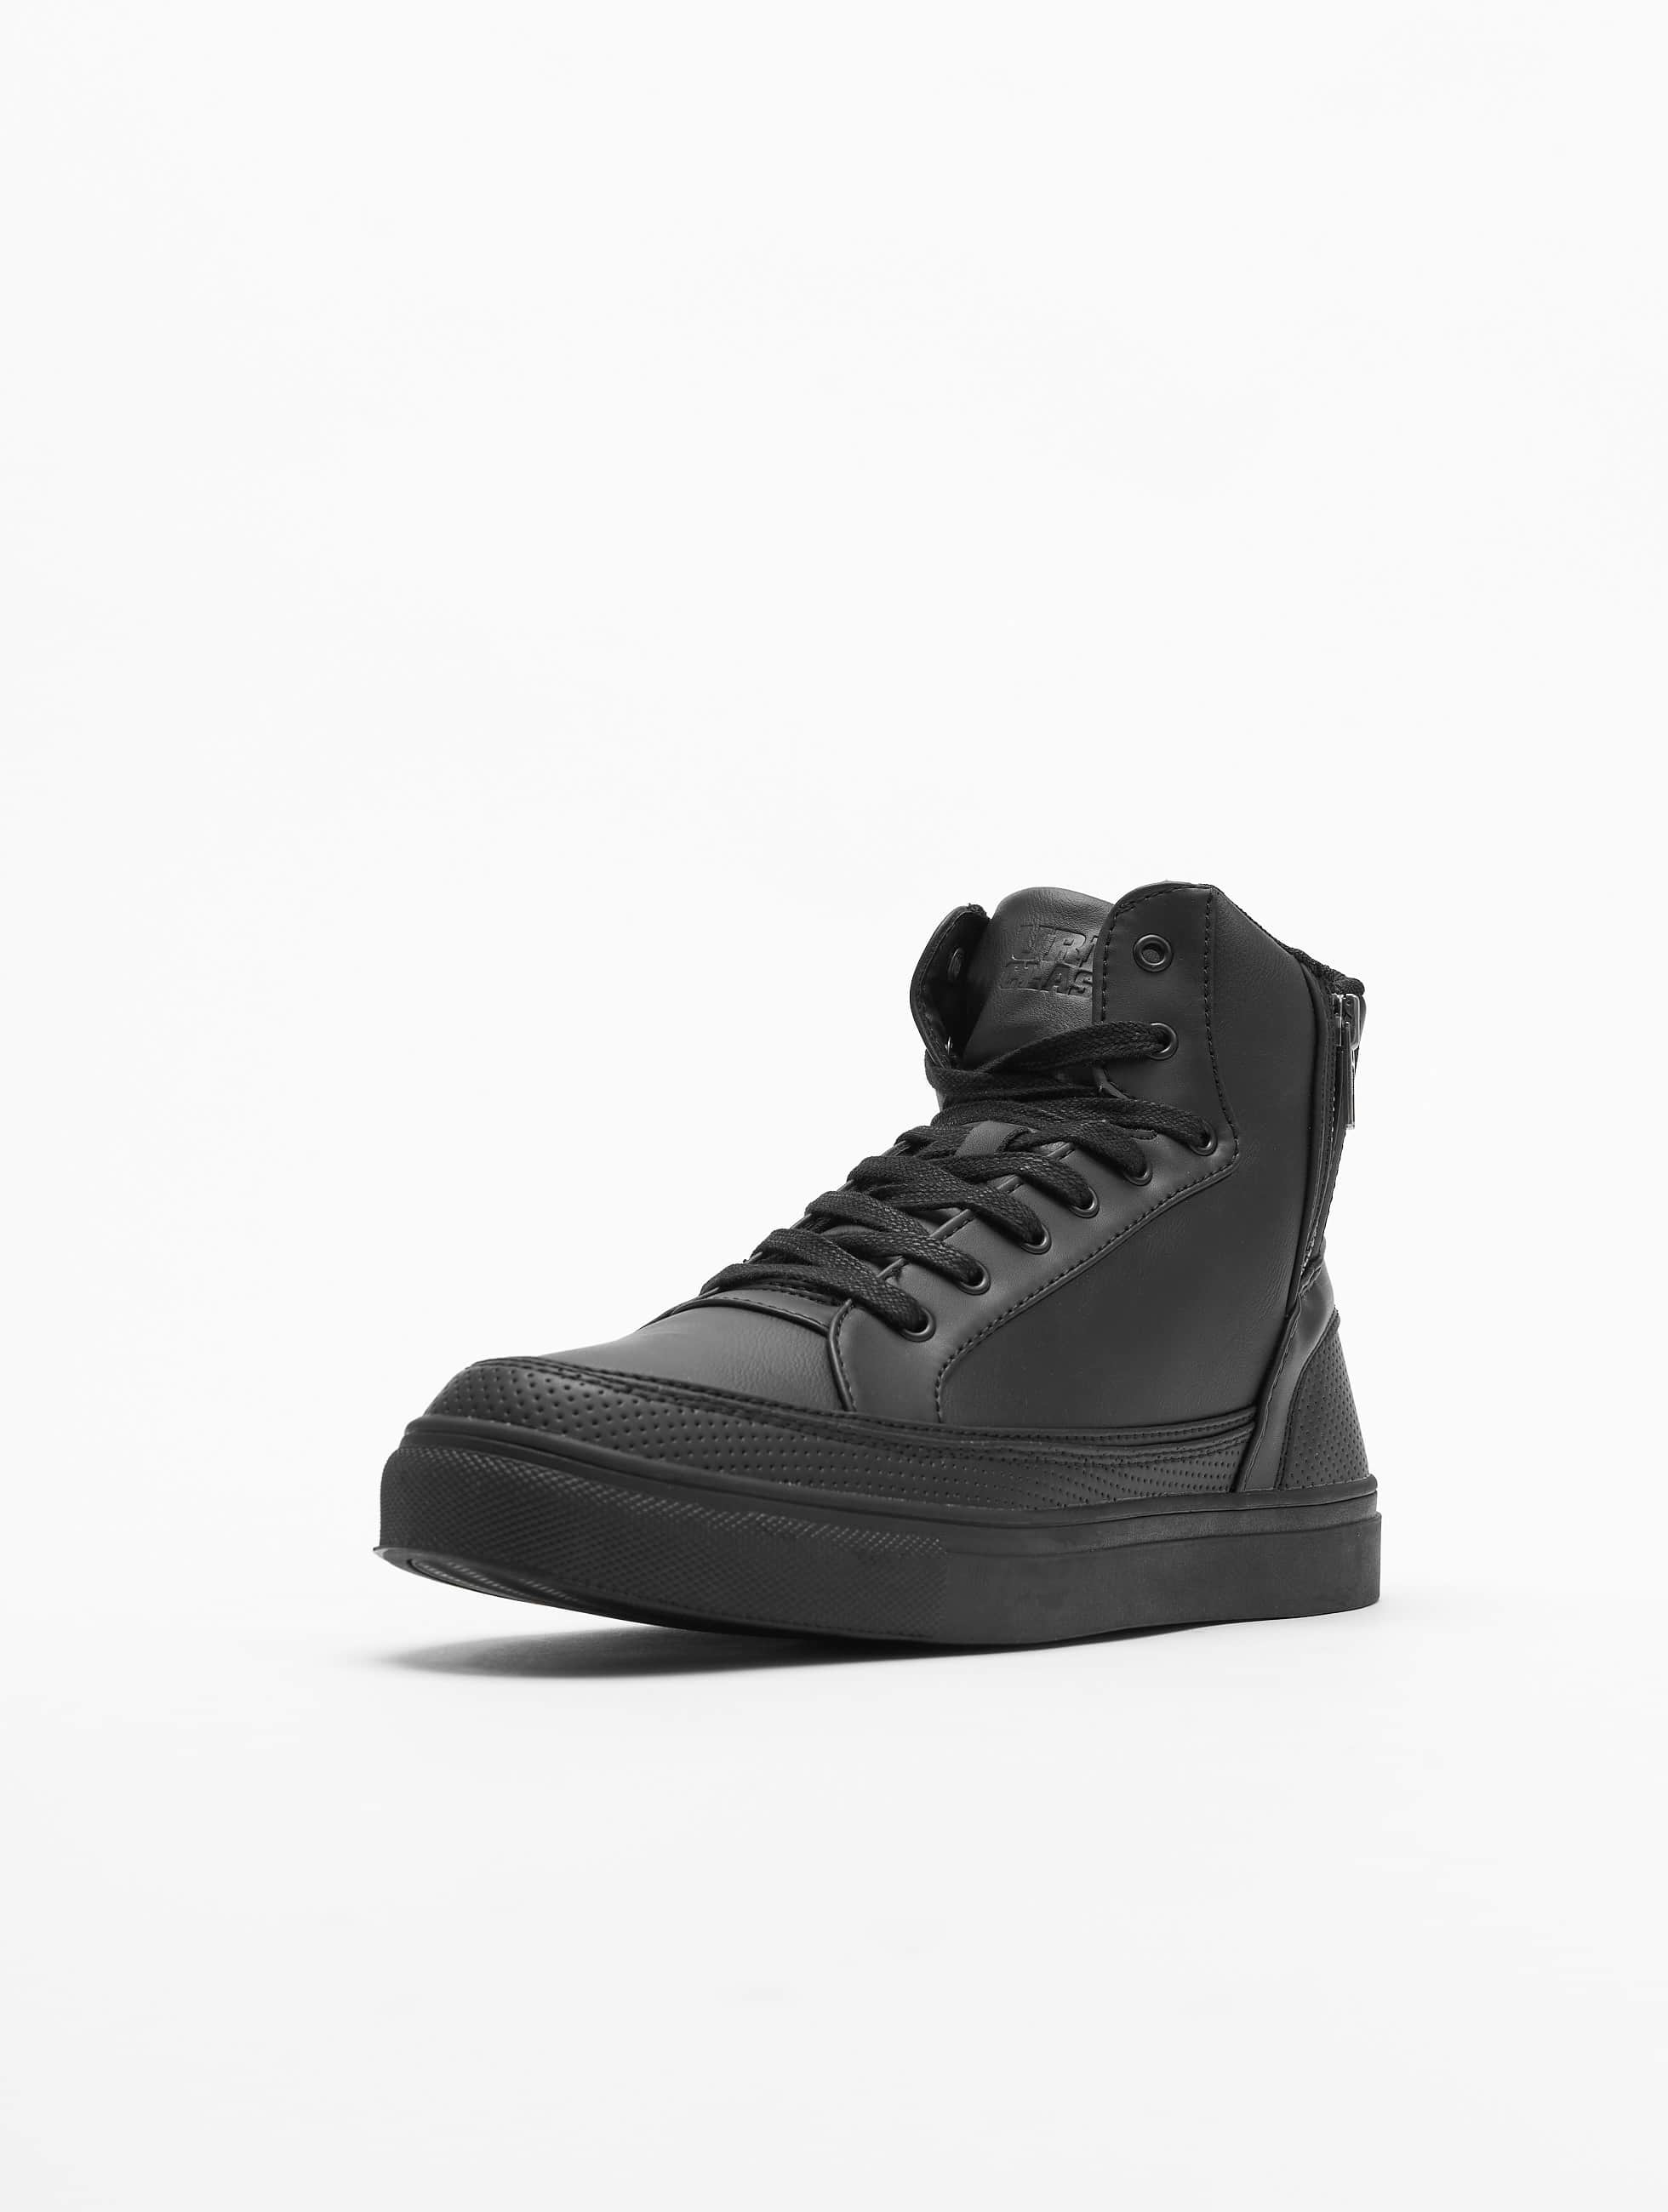 Urban Classics Sneakers Zipper black